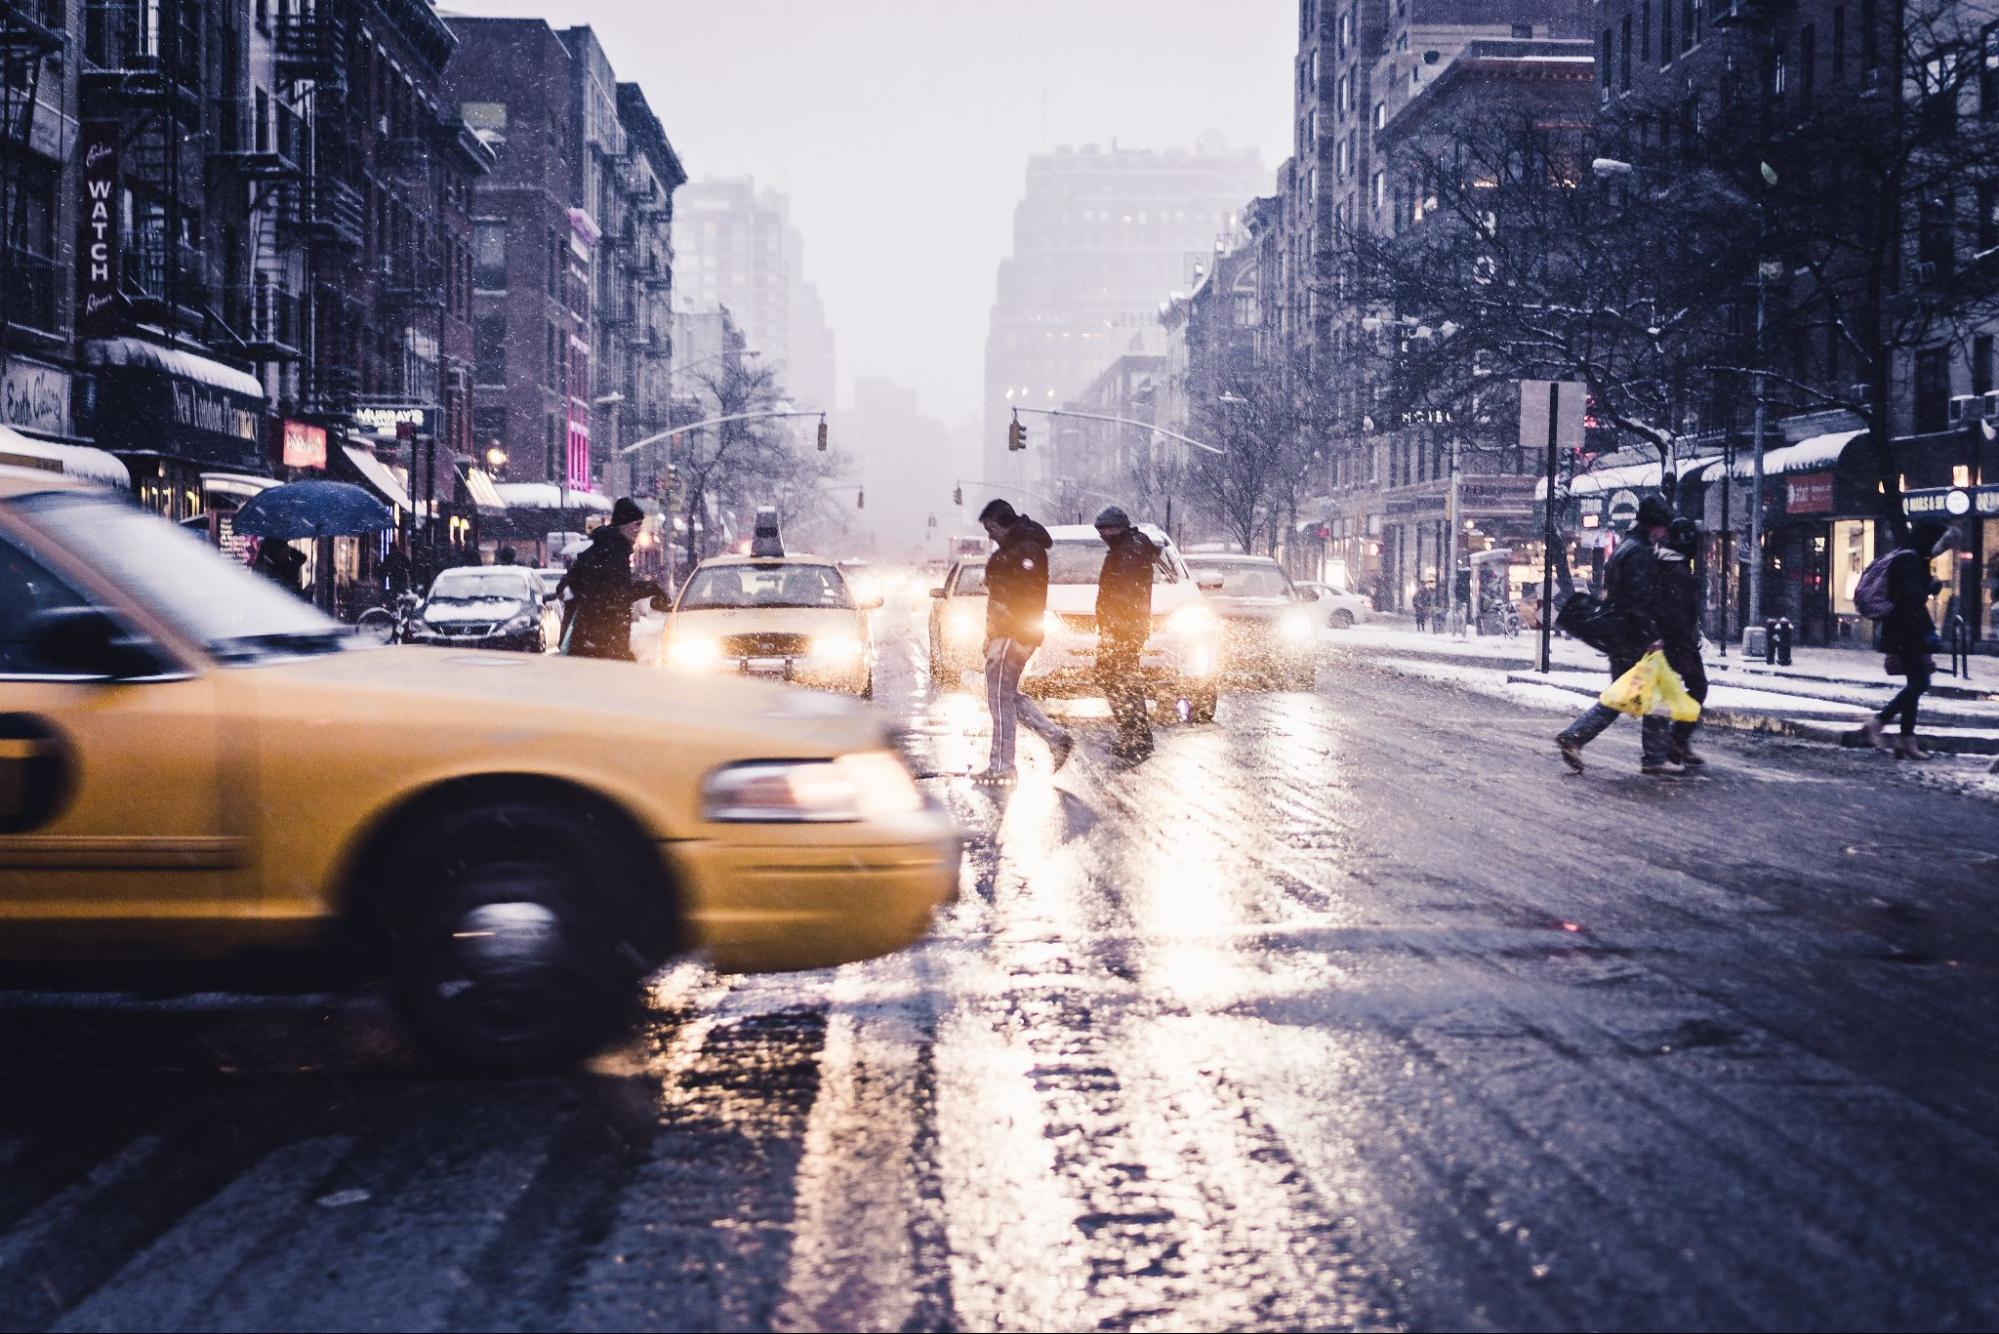 A taxi in the streets of New York City